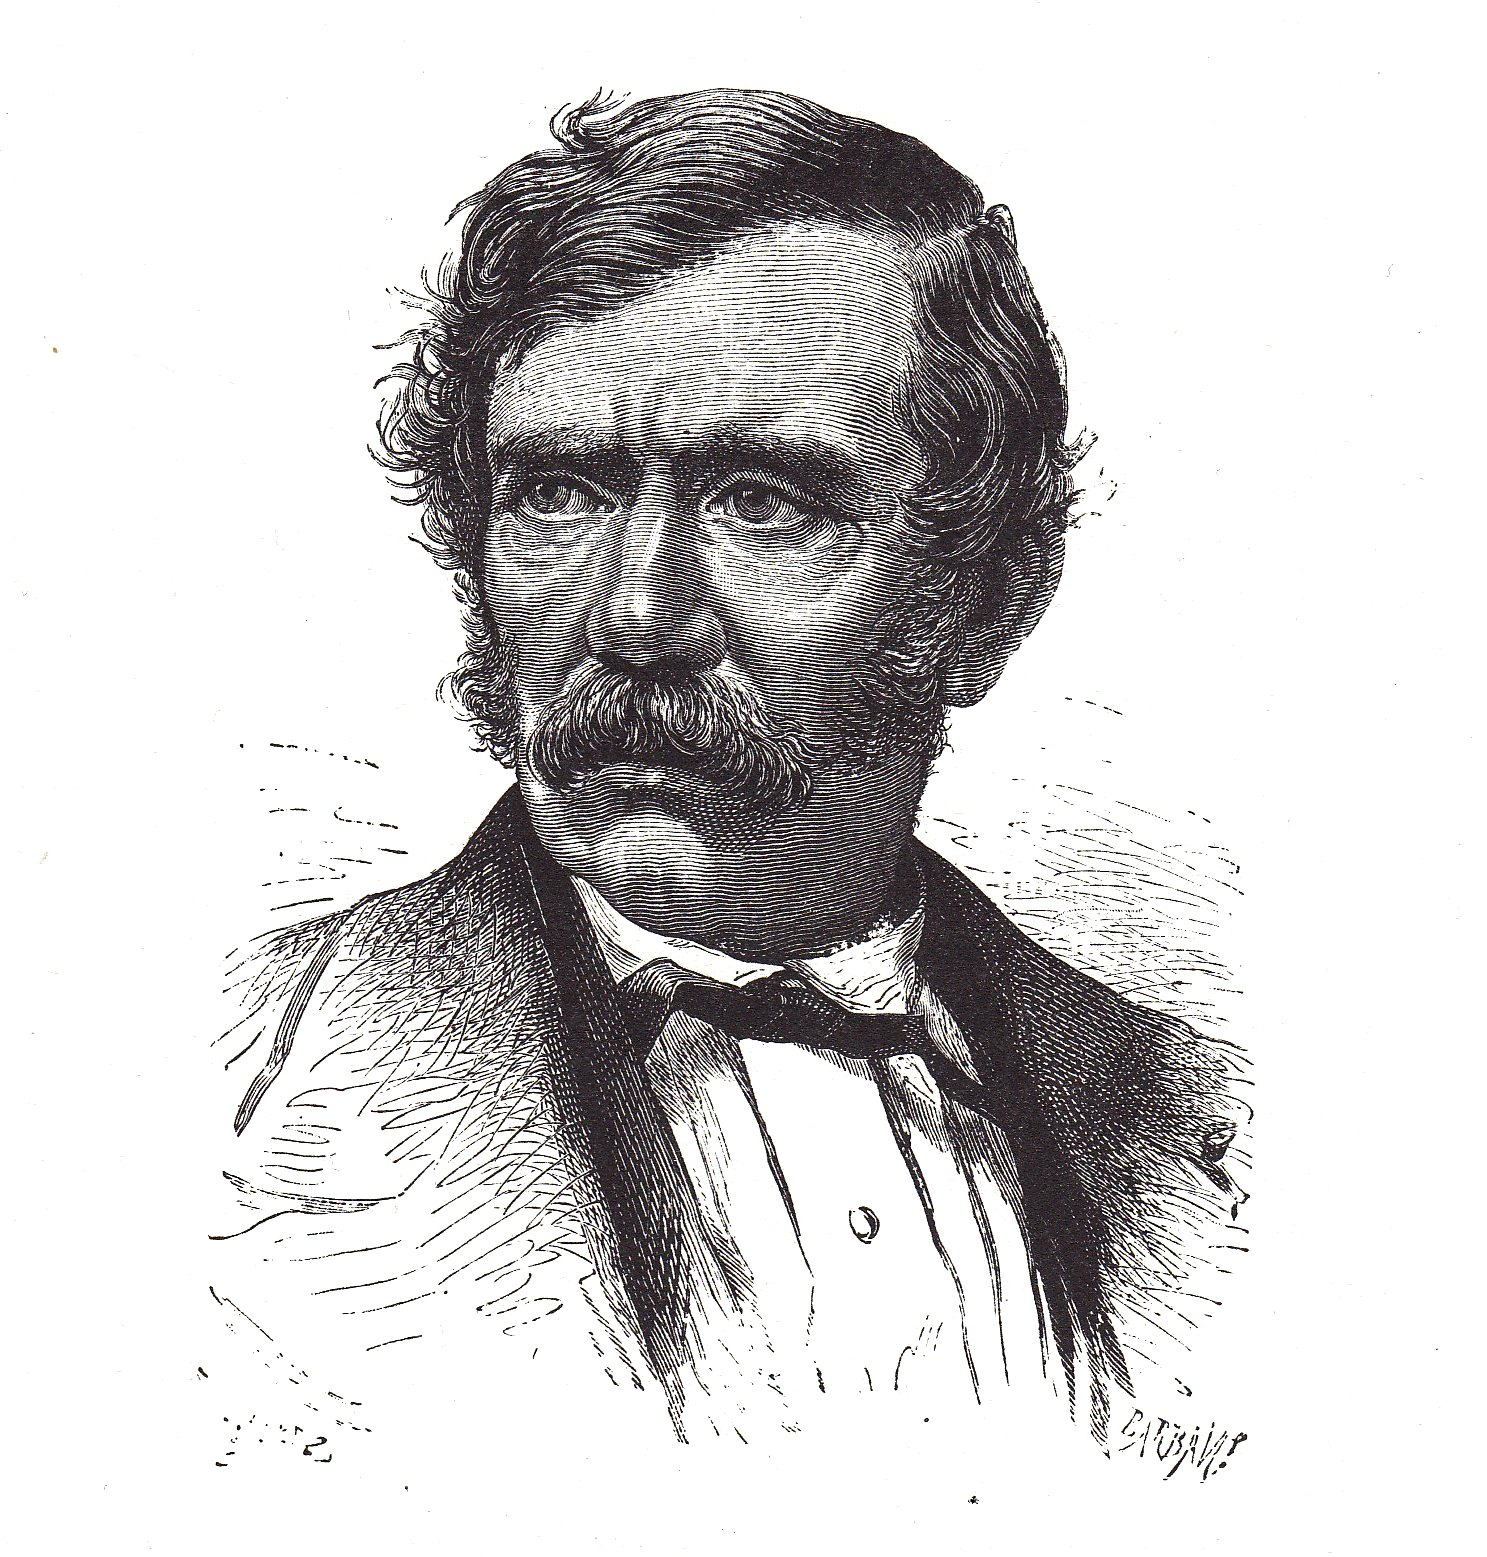 a biography of david livingston David livingstone biography cancel book format: paperback | hardcover david livingstone, africa's greatest explorer: the man, the missionary and the myth 2 oct.